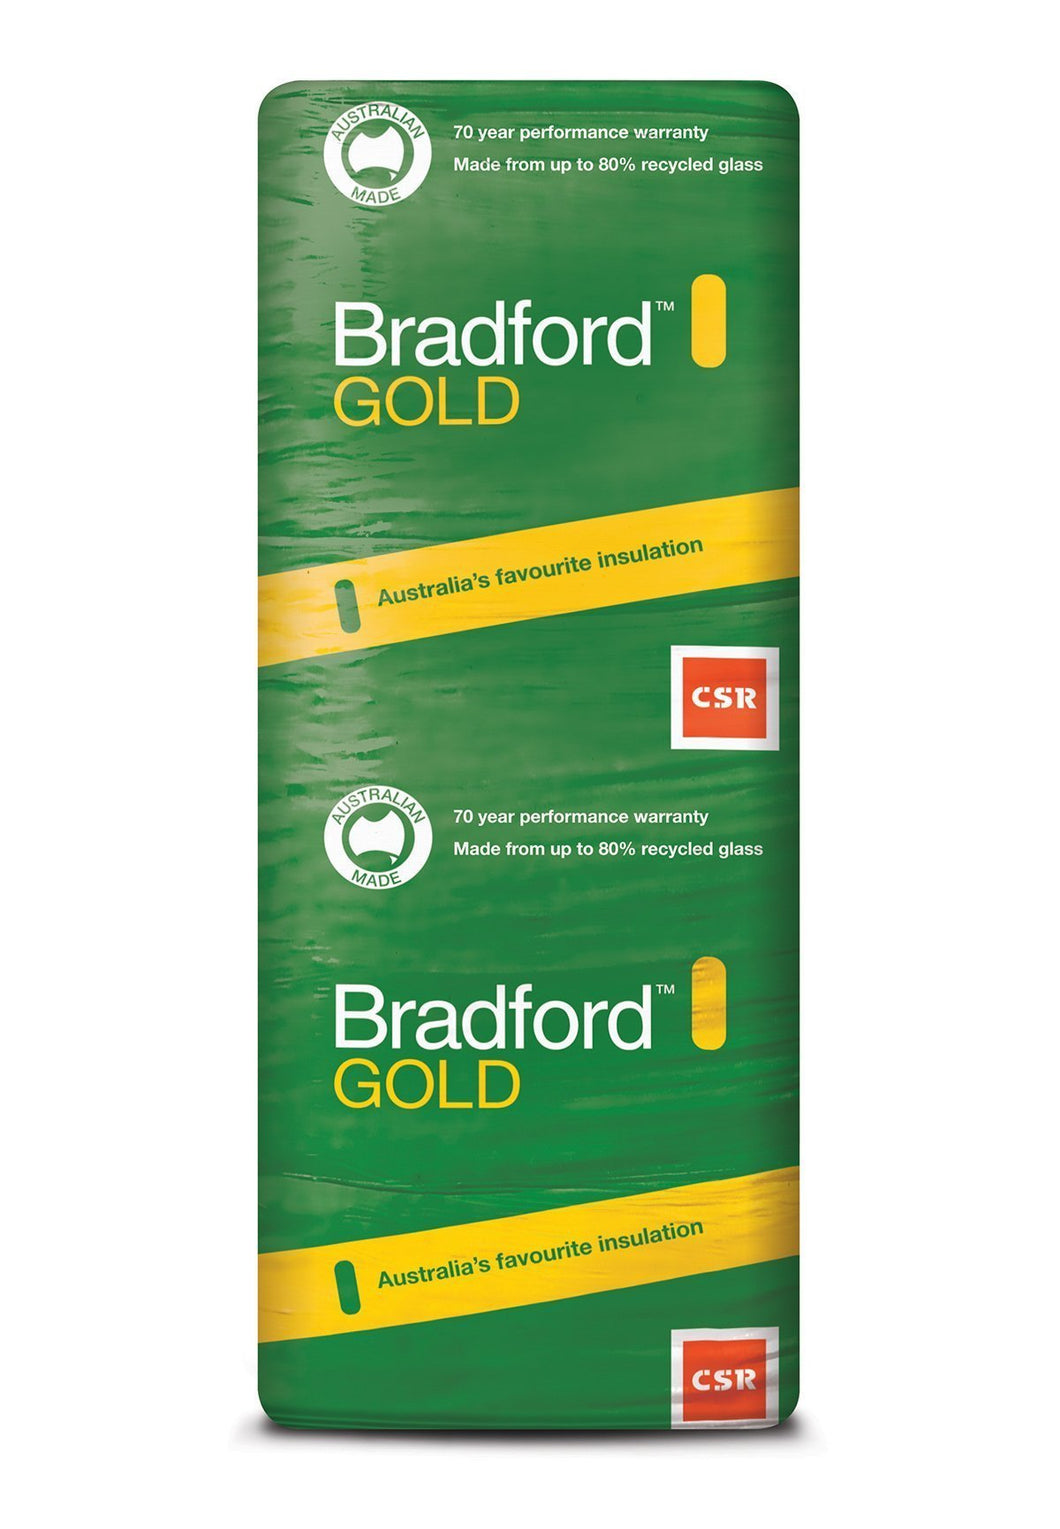 Bradford Gold Ceiling Insulation Batts - R4.1 - 1160 x 580mm - 6.7m²/pack - Patnicar Insulation